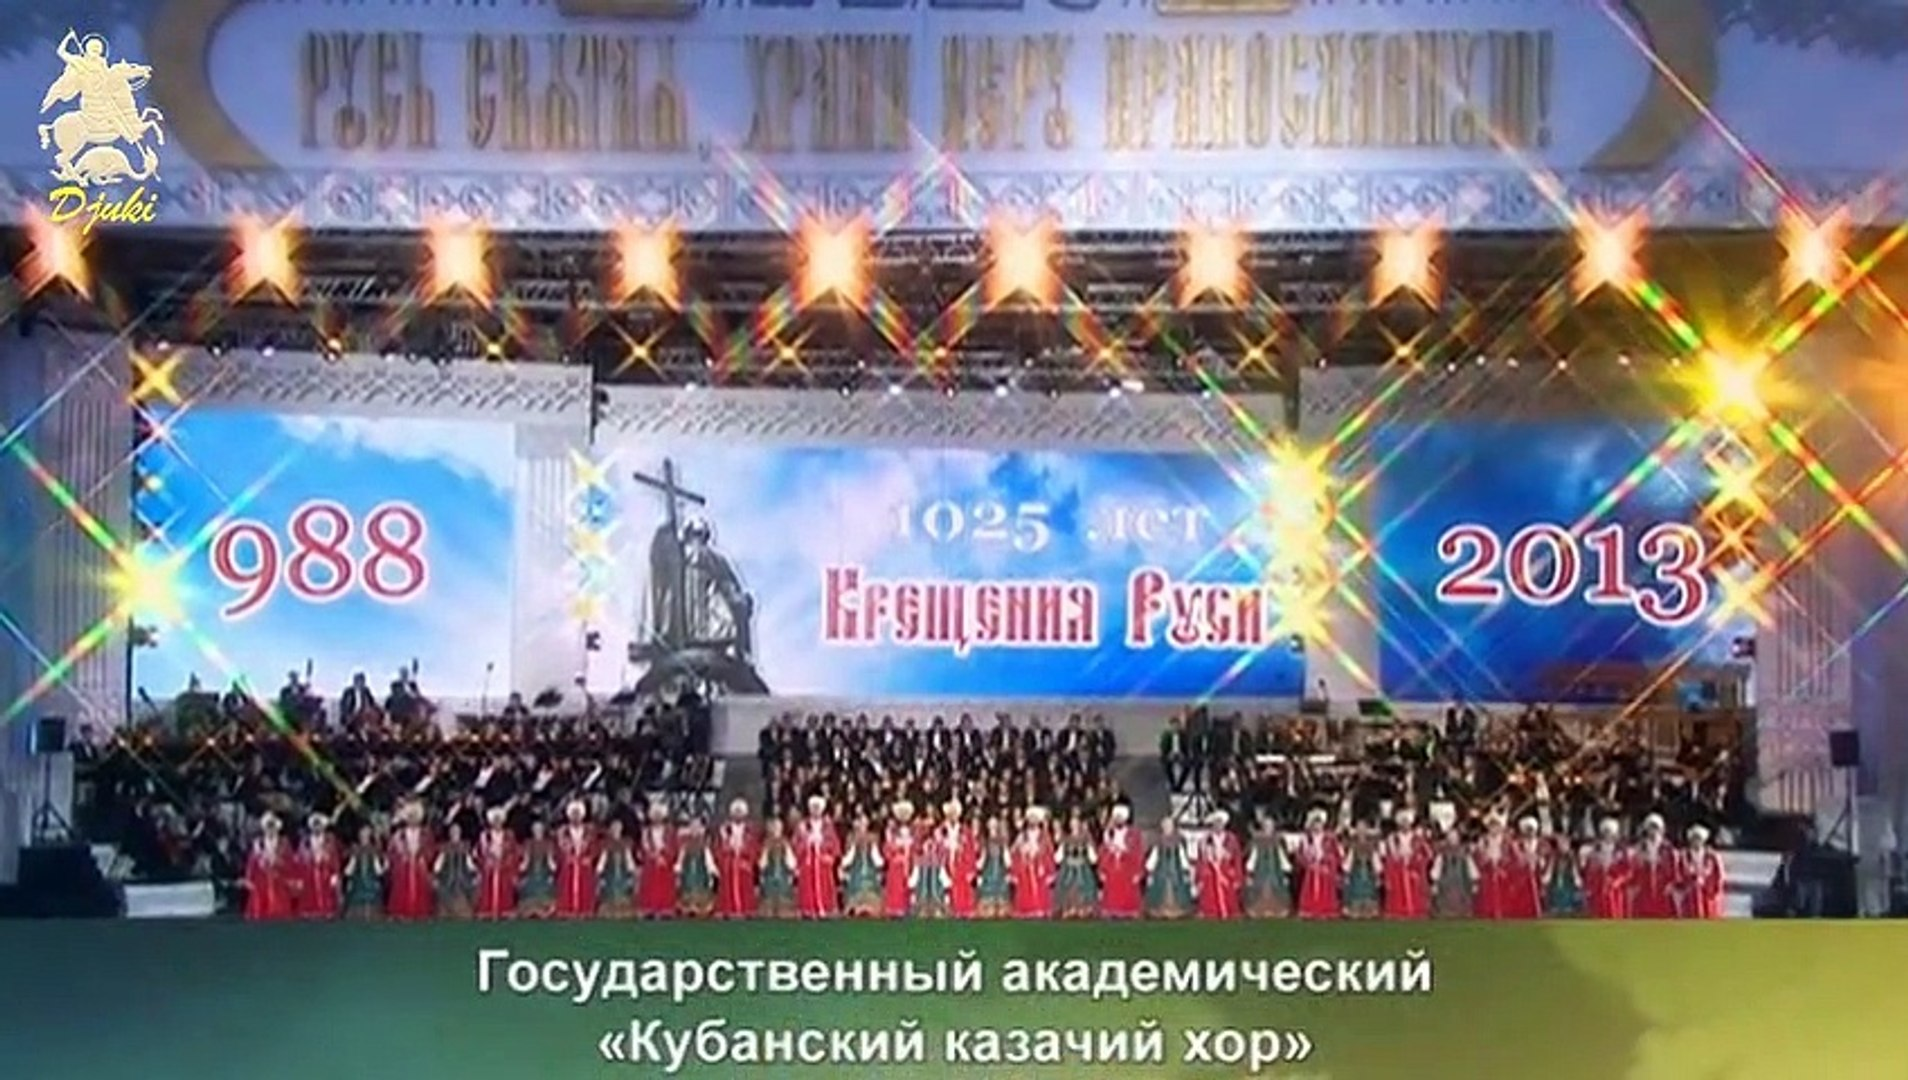 1025 лет Крещение Руси - 1025 years of the Baptism of Rus - 2013